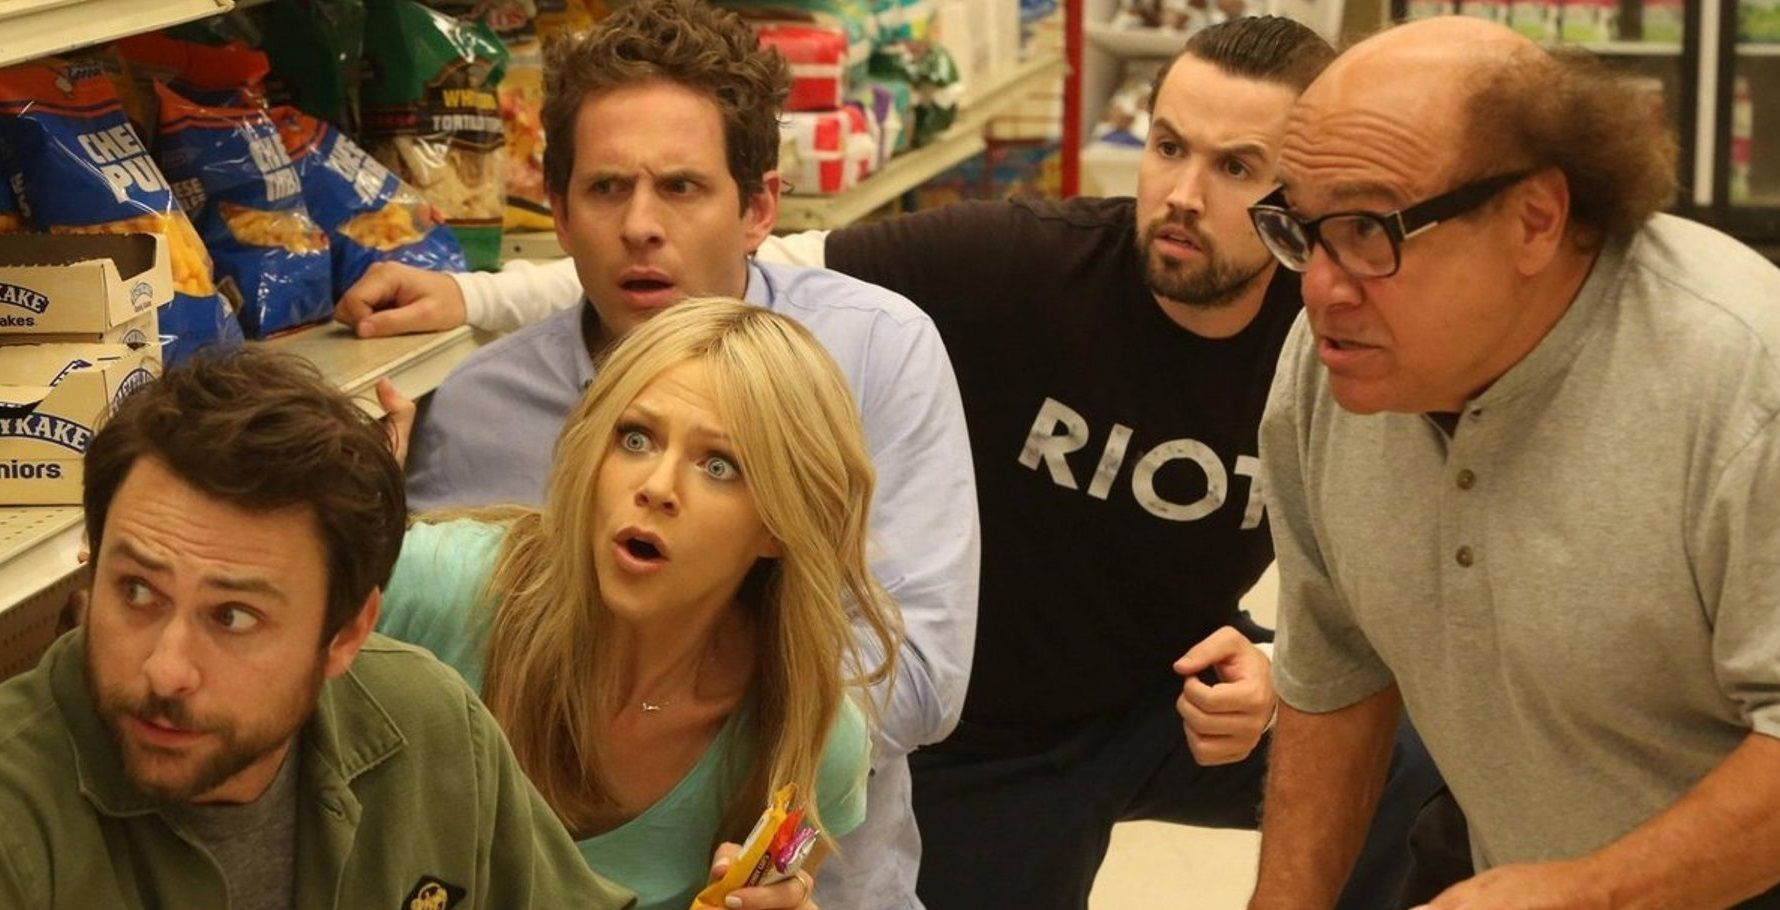 10 Shows To Watch If You Like It's Always Sunny In Philadelphia